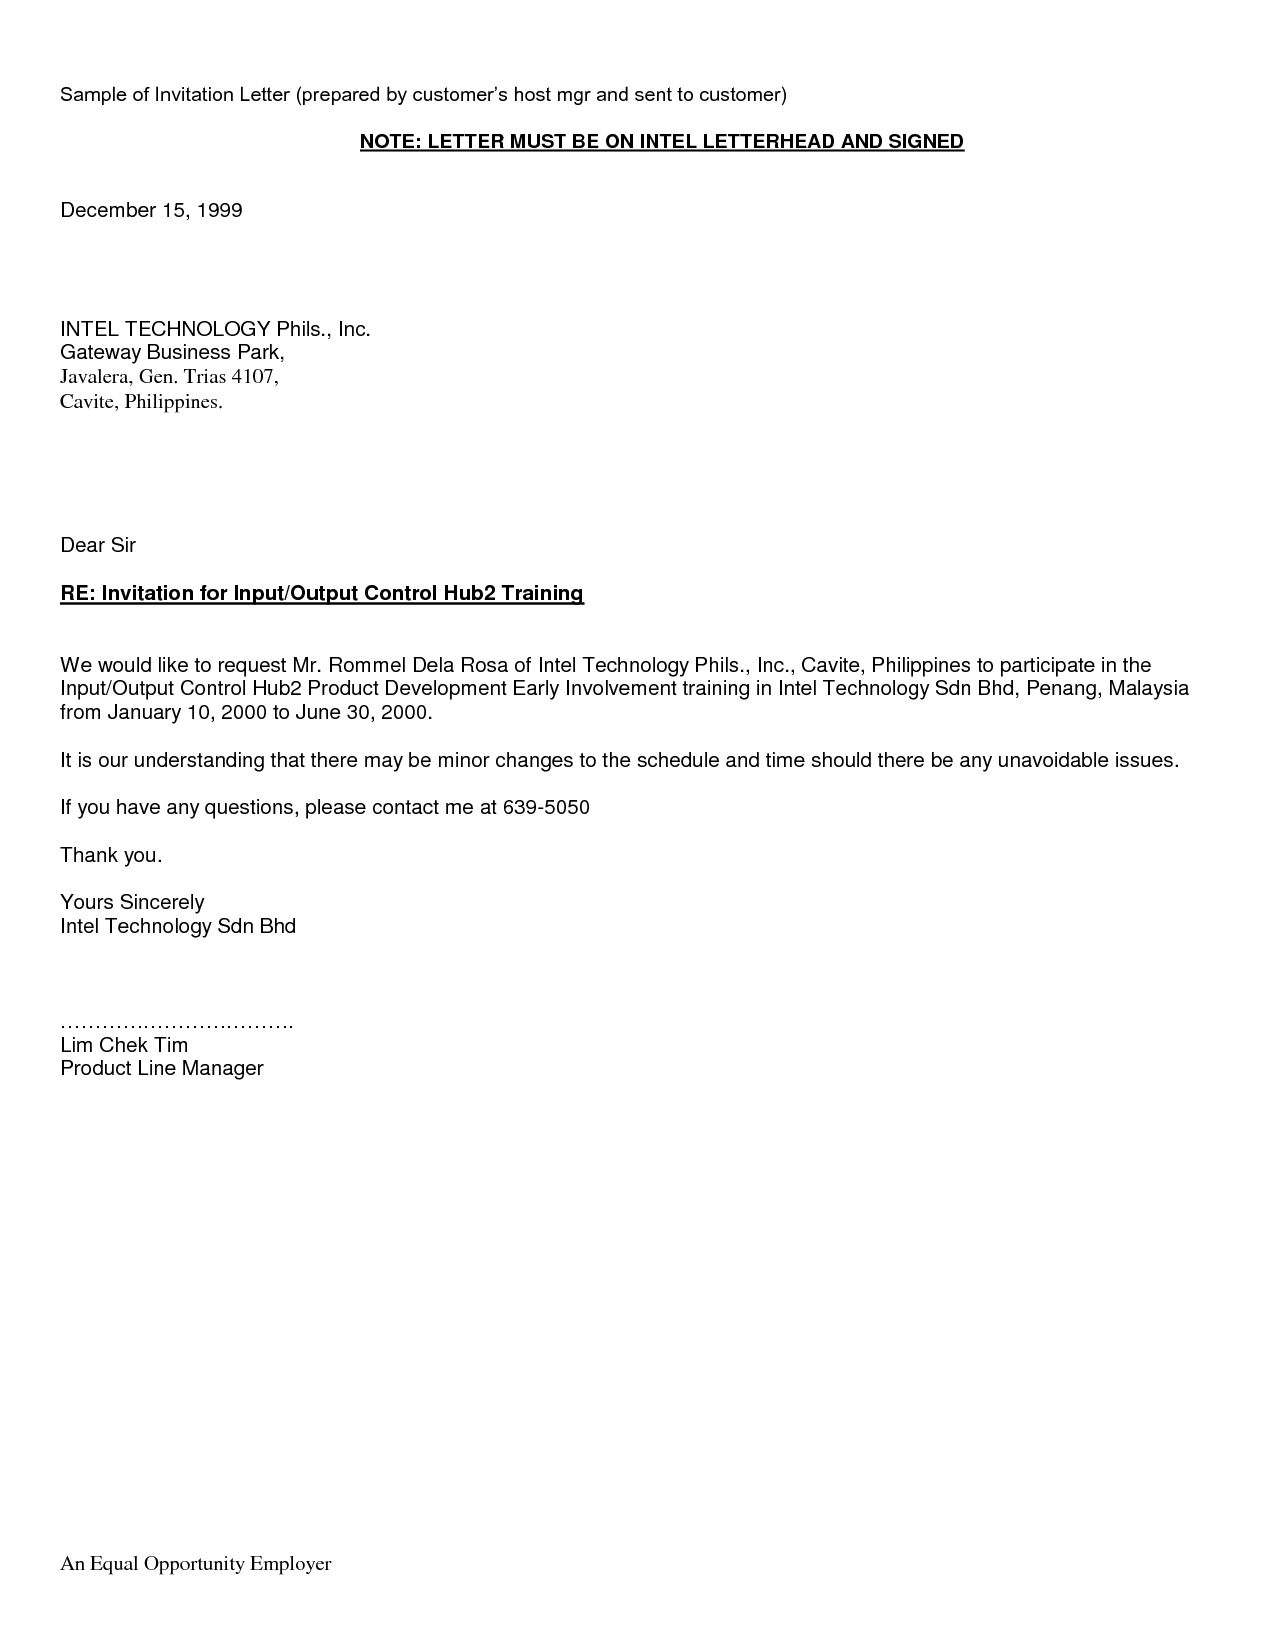 Cancellation Letter Format Bank Termination Uae Use Credit Card